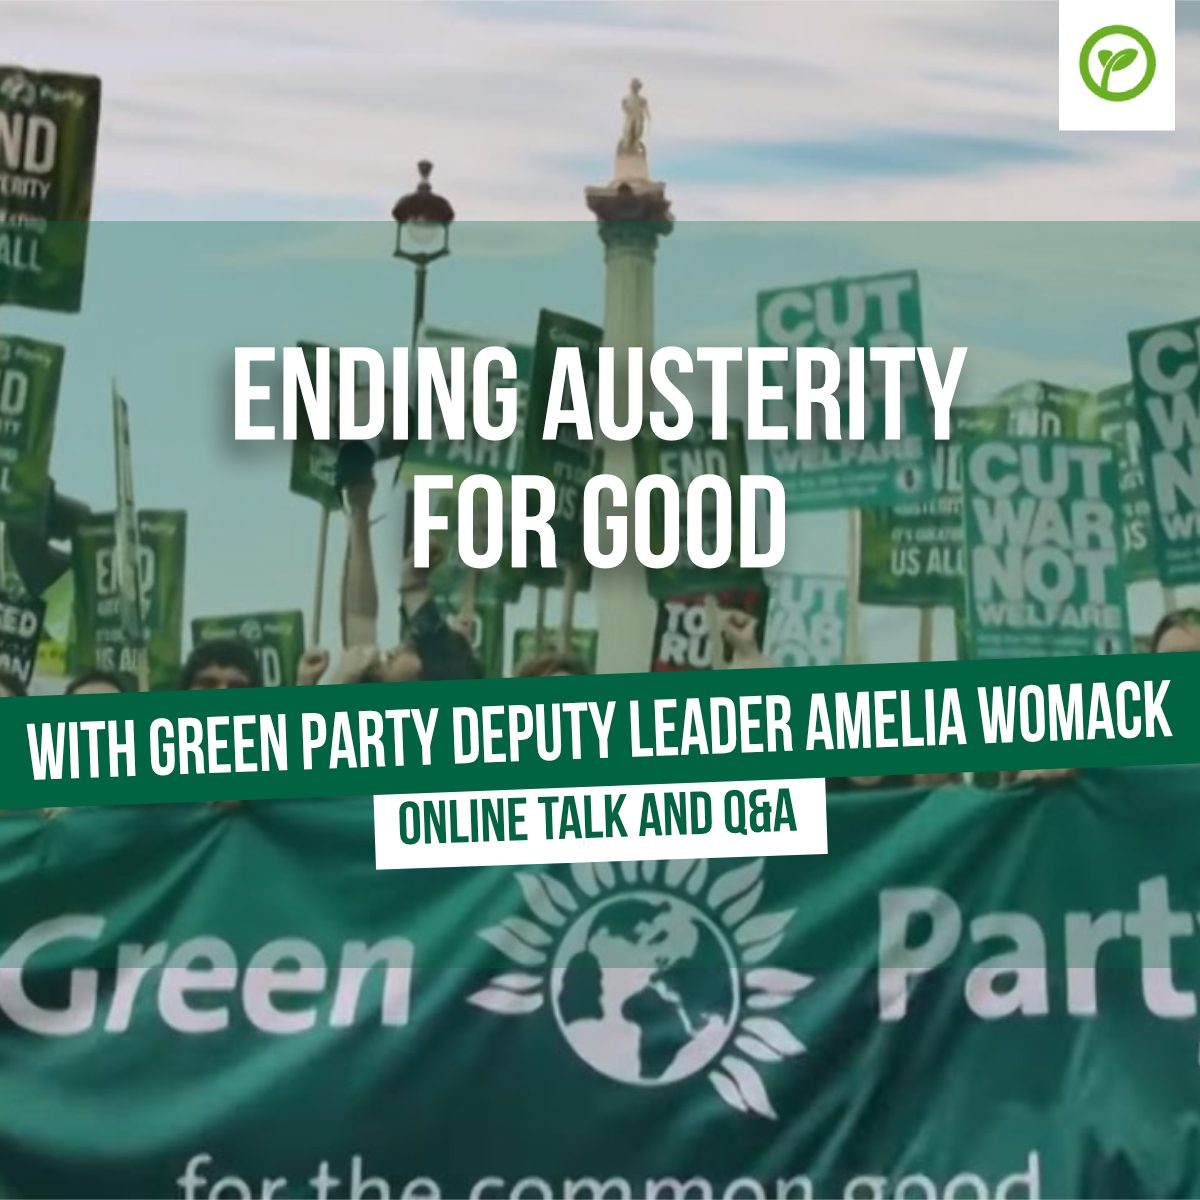 Ending Austerity for Good with Green Party deputy leader Amelia Womack. Online talk and Q&A.